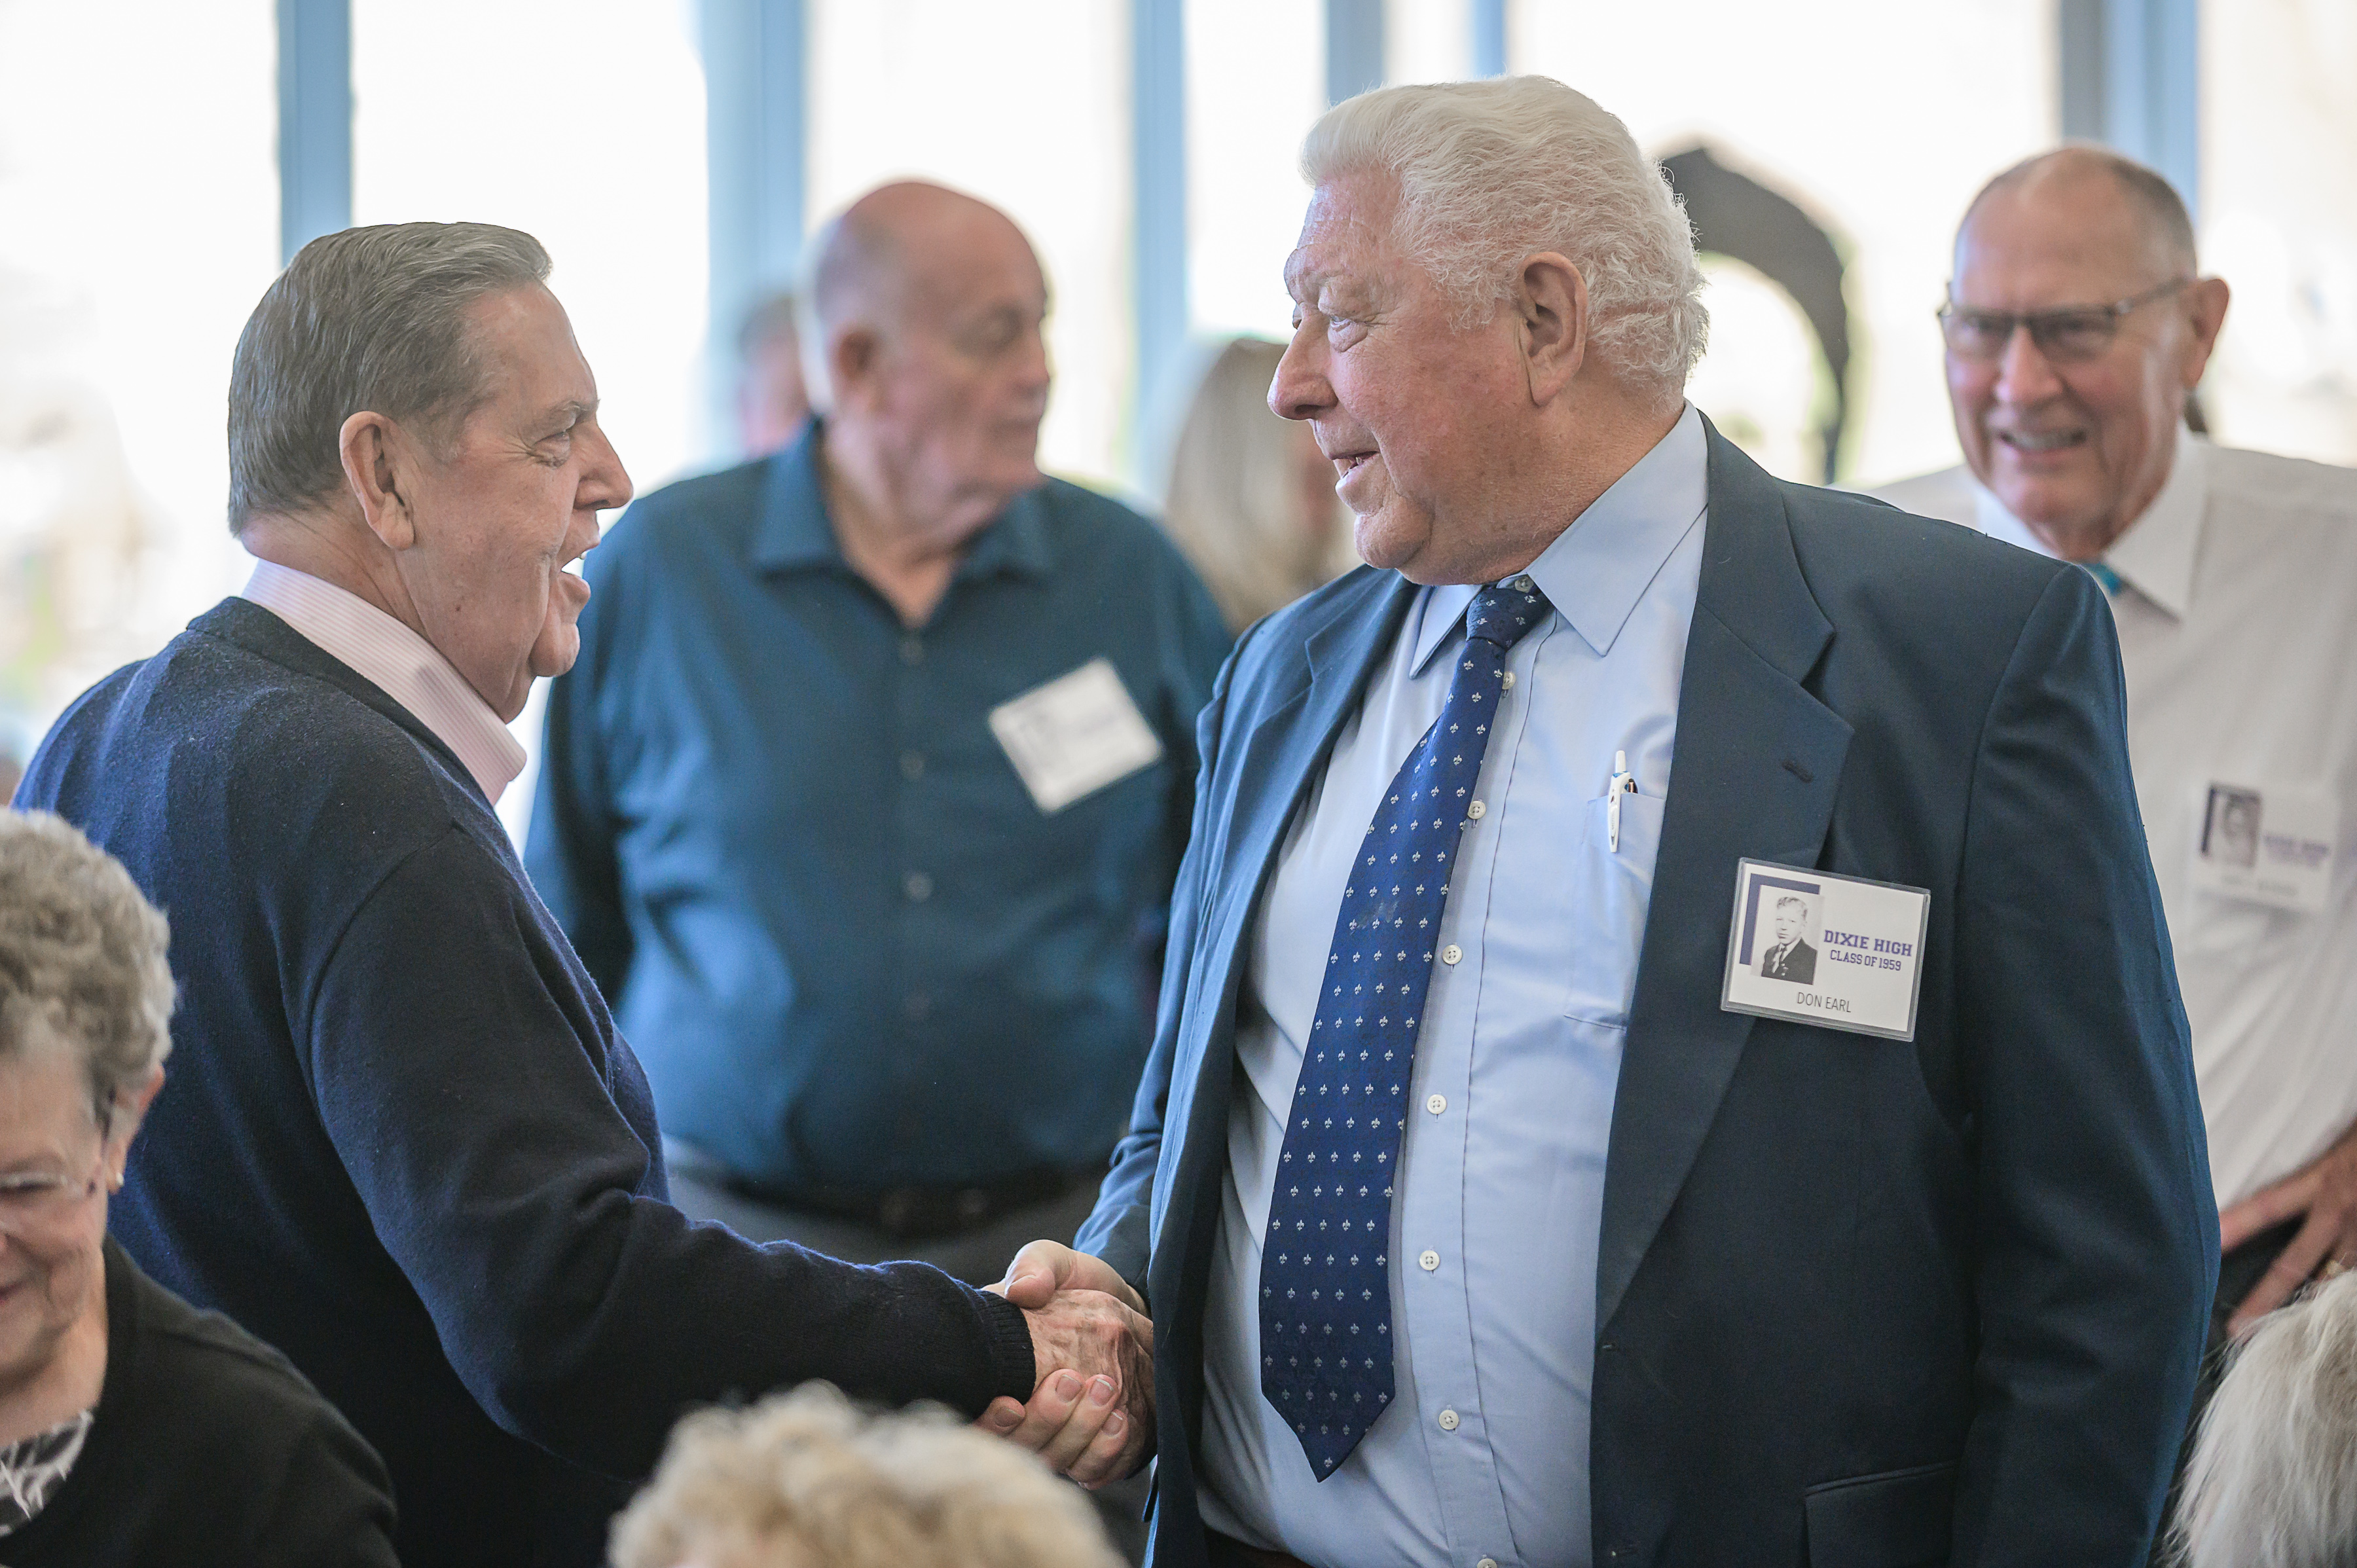 Elder Jeffrey R. Holland, left, a member of the Quorum of the Twelve Apostles of The Church of Jesus Christ of Latter-day Saints, shakes hands with classmate Don Earl at the 60th reunion for the Dixie High School class of 1959 on Thursday, Oct. 24, 2019, in St. George.